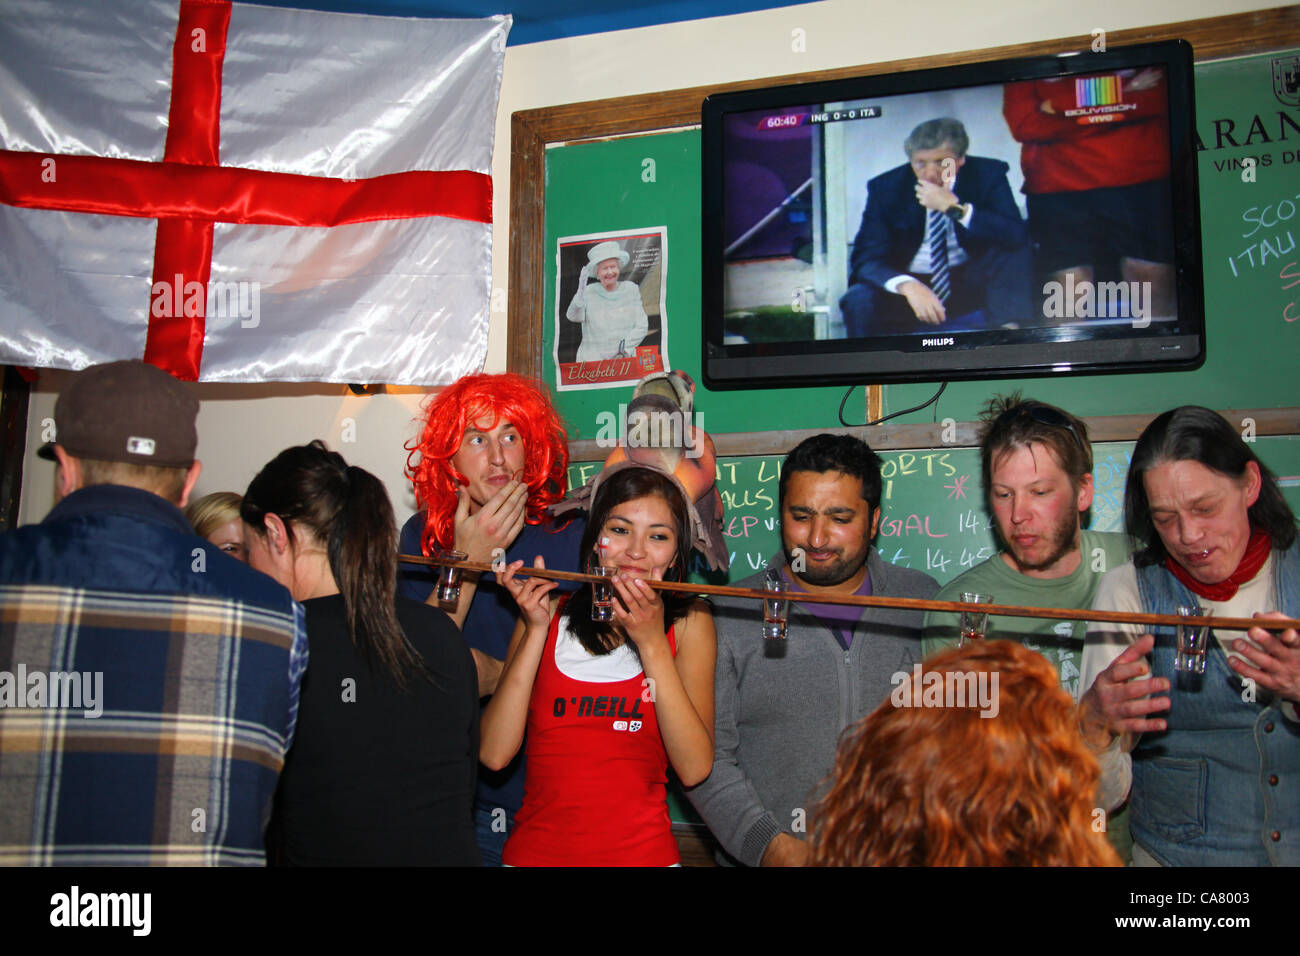 LA PAZ, BOLIVIA, 24th June 2012. A mixture of English travelers, expats and locals drink shots while watching the - Stock Image